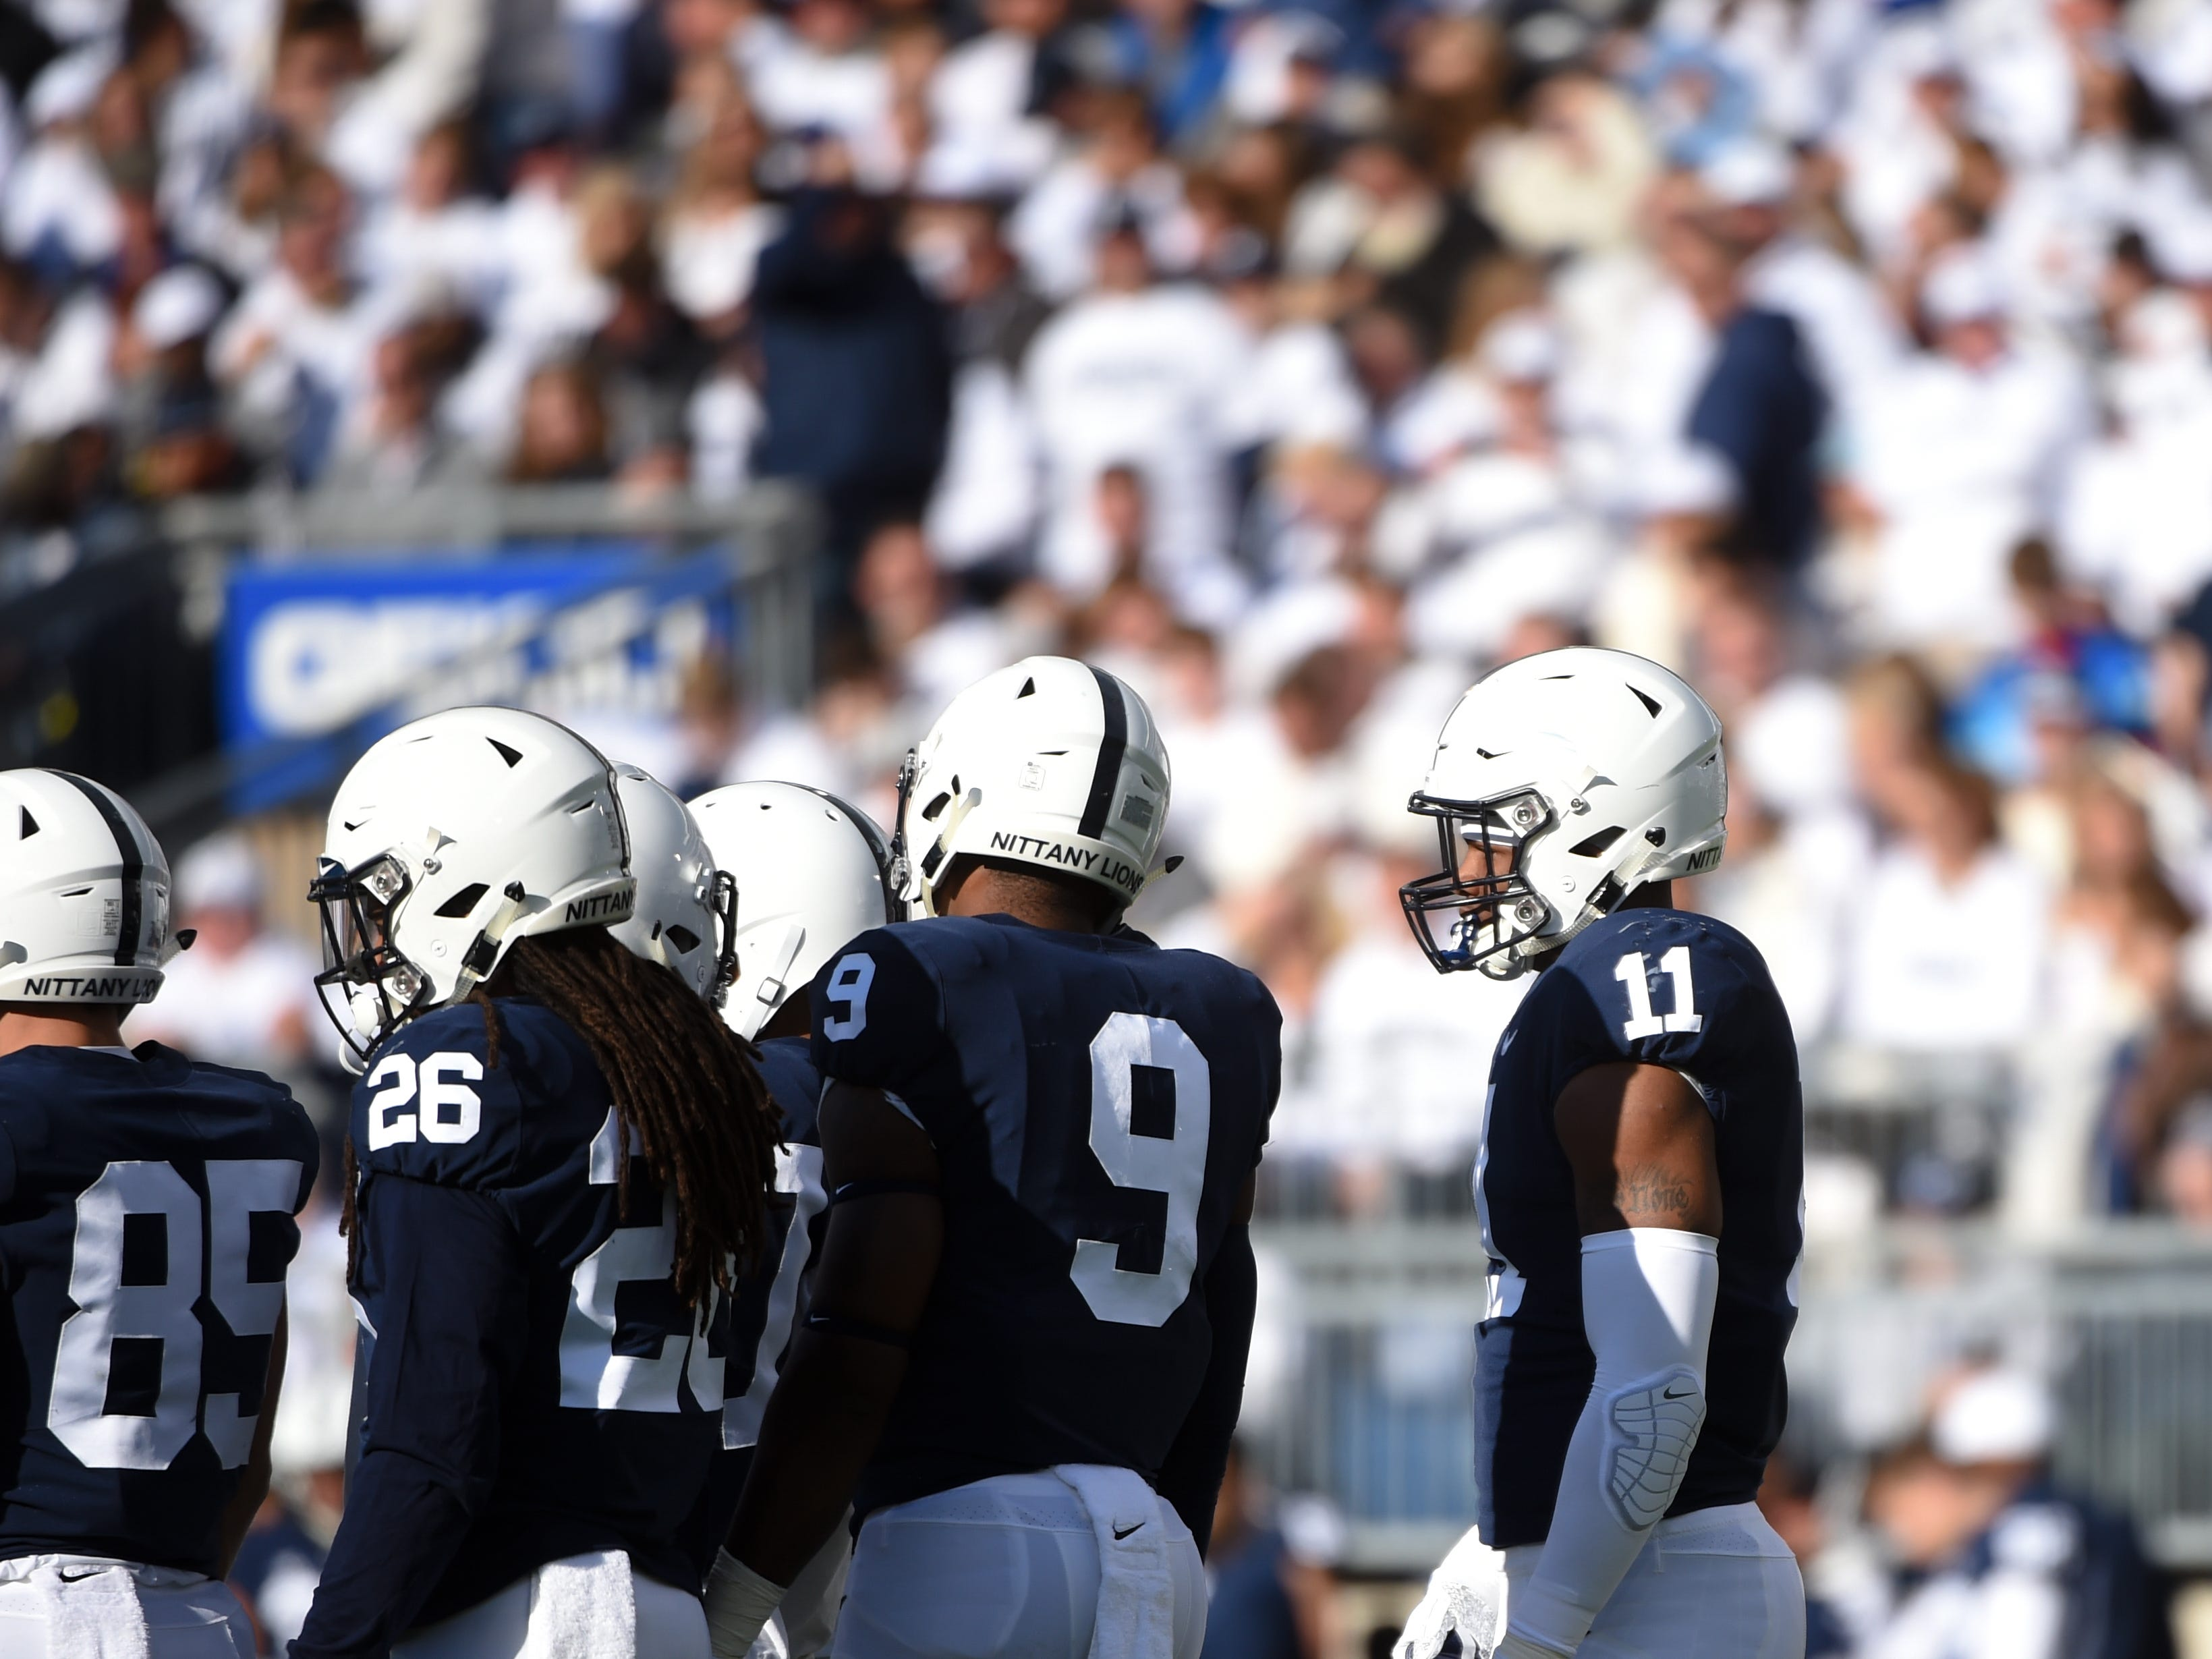 Penn State's defense huddles up during the Penn State Homecoming game against Michigan State, October 13, 2018. The Nittany Lions fell to the Spartans 17-21.